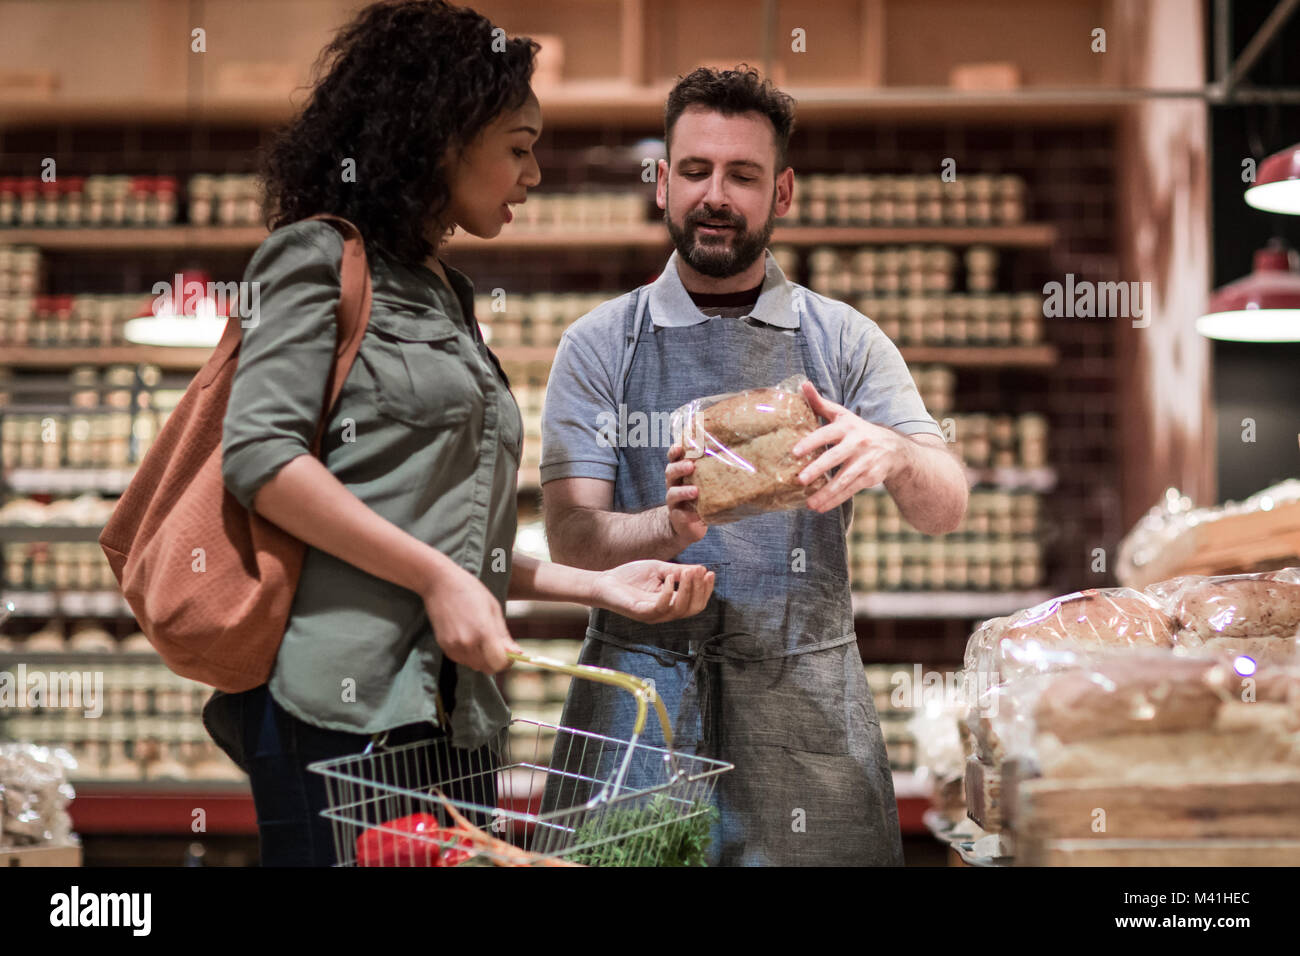 Baker helping customer in grocery store - Stock Image